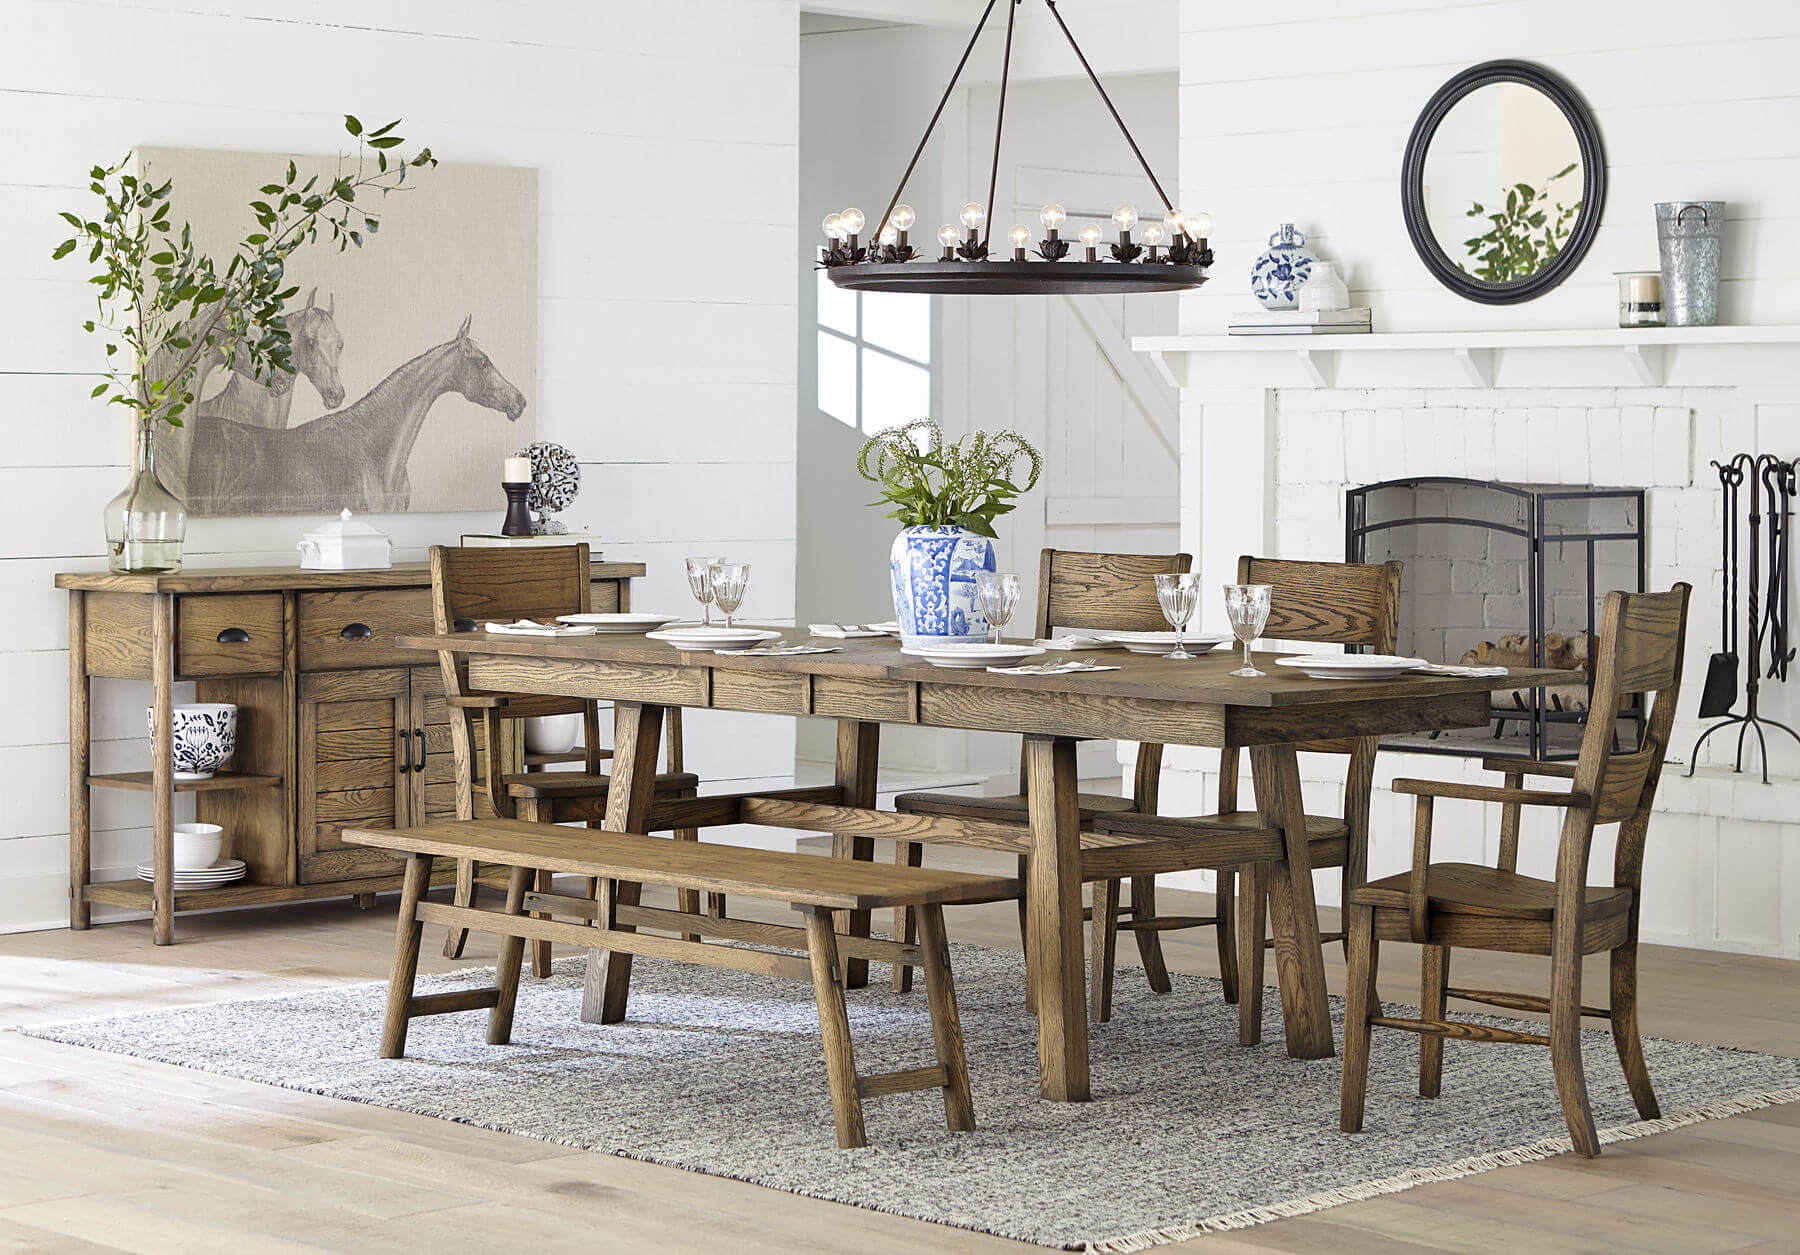 Catina's Madera Collection offers rustic elegance to any home.